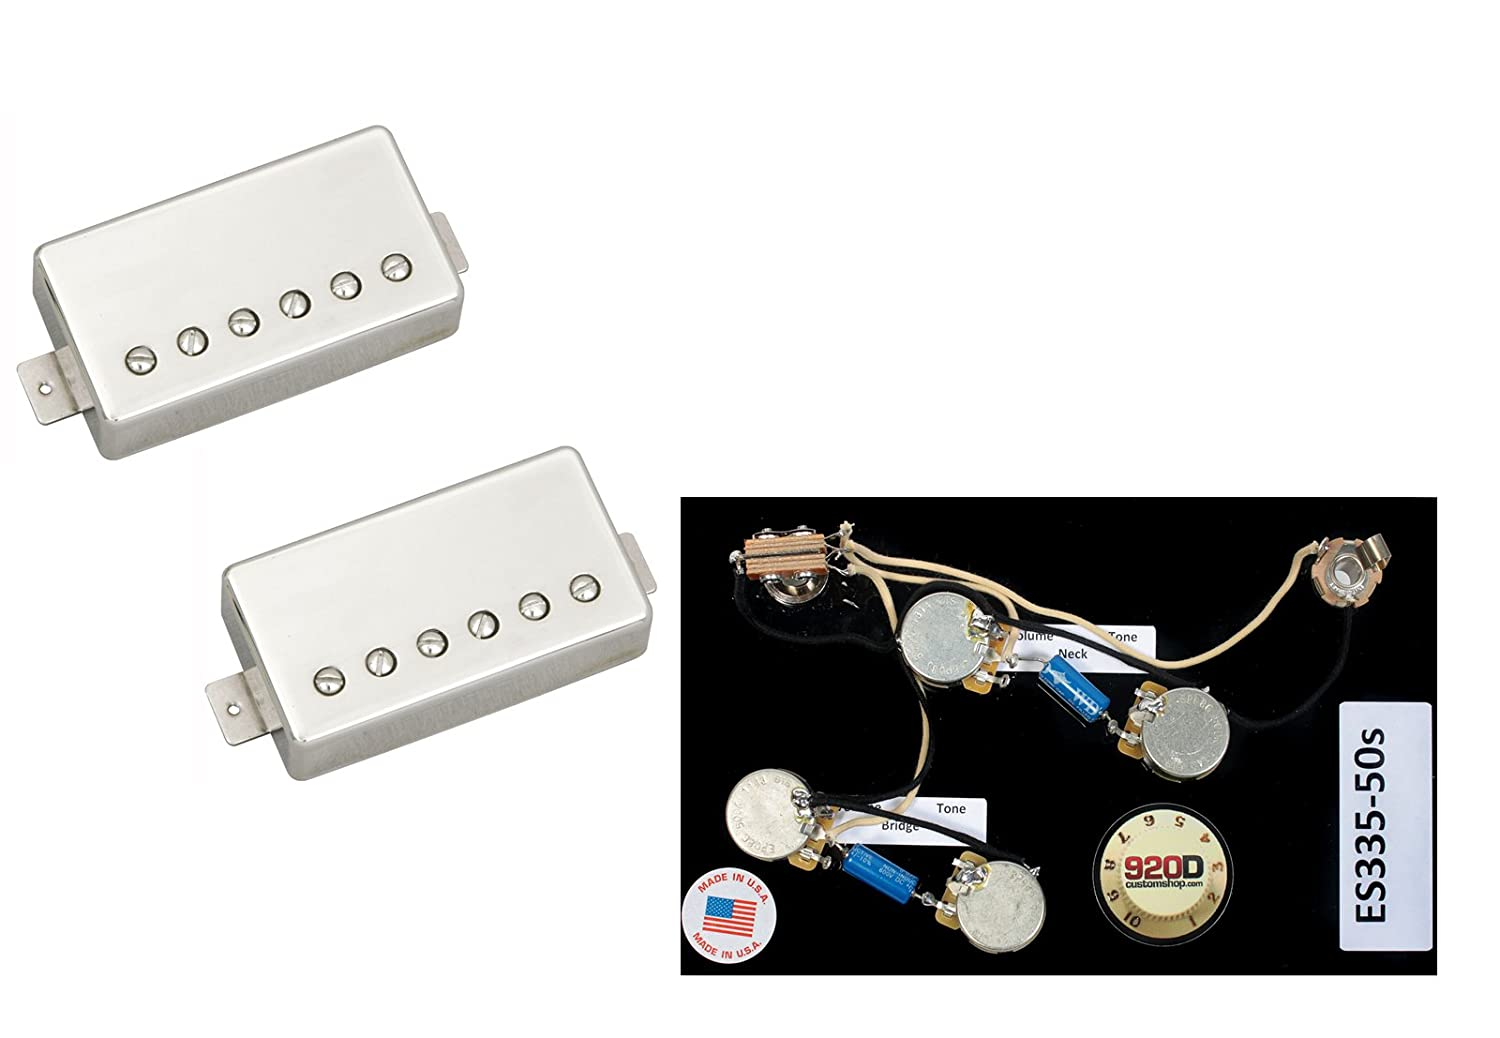 Duncan Pearly Gates Humbucker Pickup Set Nickel Es335 Sg Wiring Capacitor And 50 S Harness Long Musical Instruments